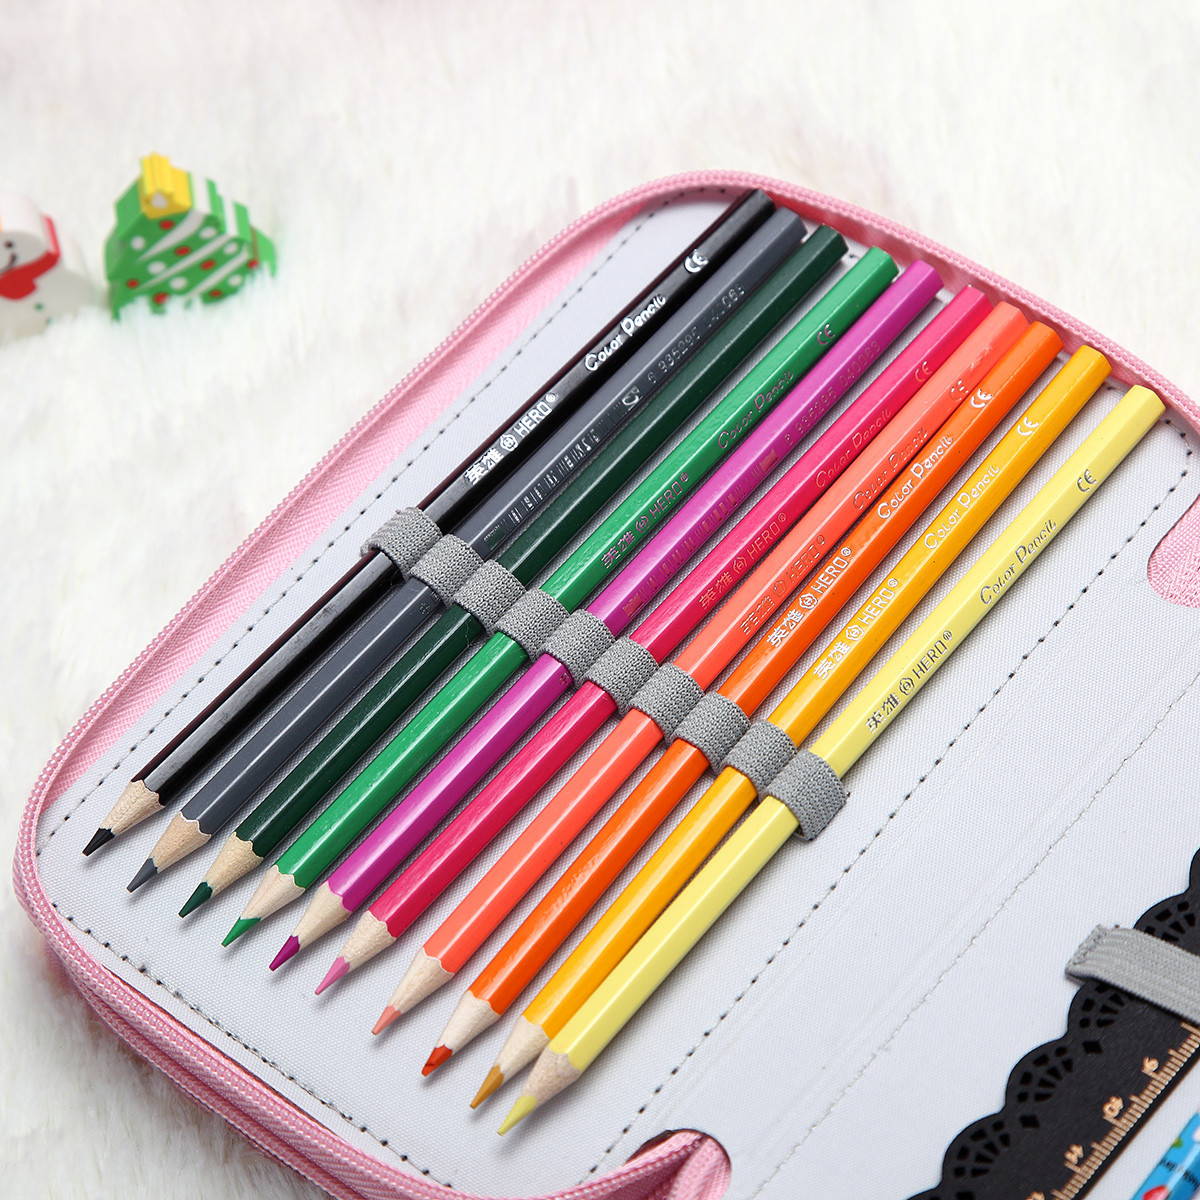 36 Holes Art Pen Pencil Makeup Brush Case Box Students Stationary Zipper Storage Makeup Bag